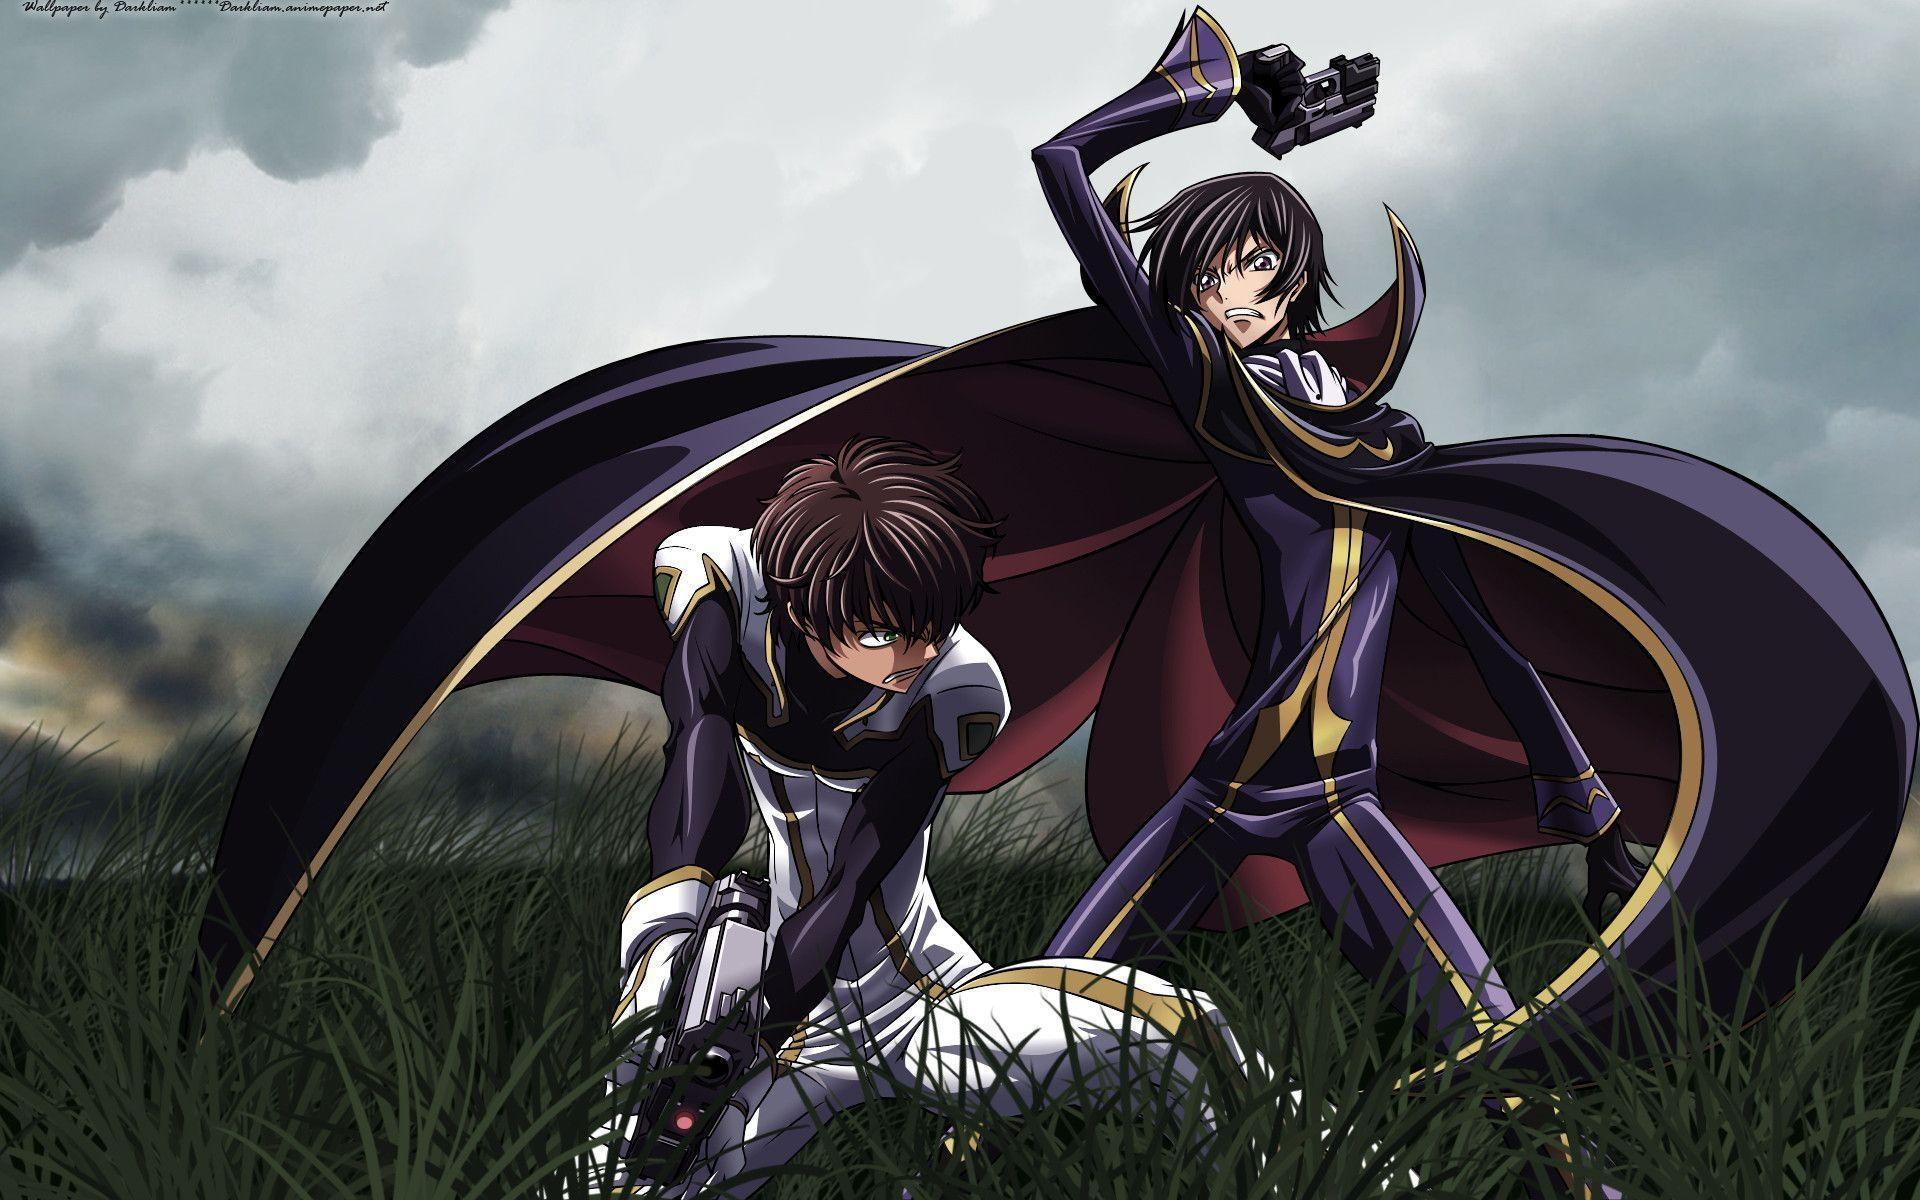 Code Geass Fight Anime Wallpapers